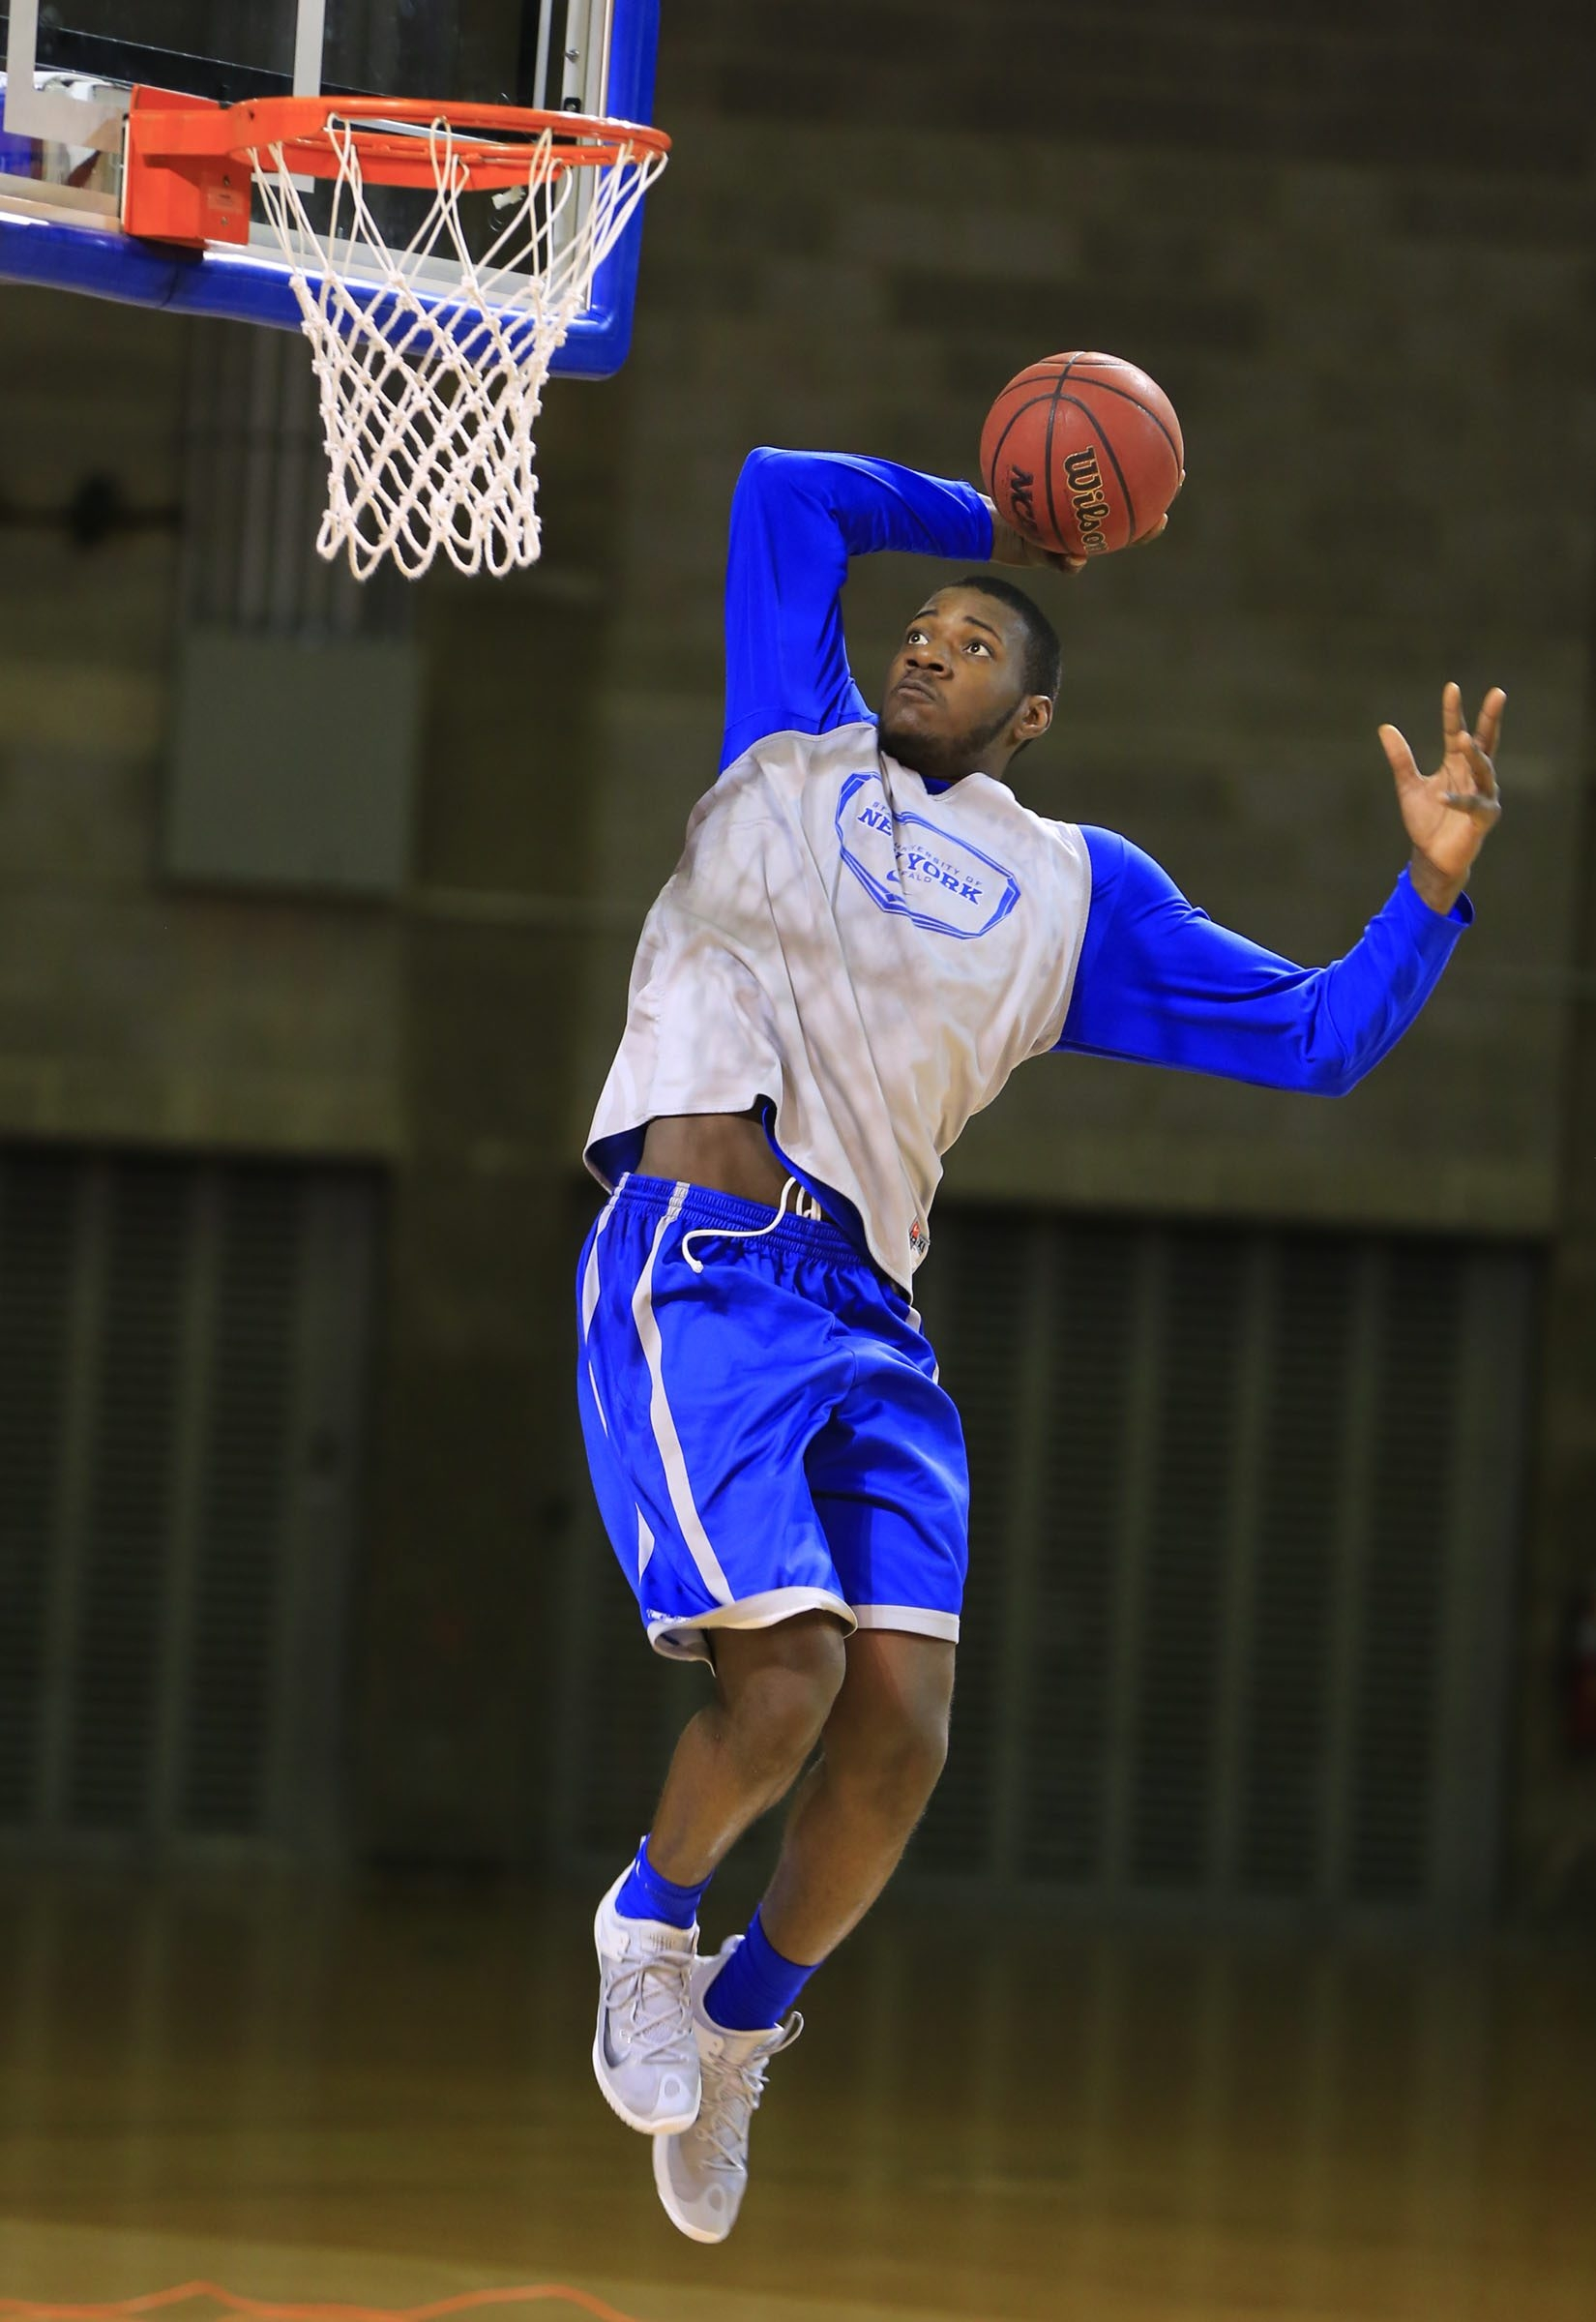 University at Buffalo's Raheem Johnson during practice at Alumni Arena on Tuesday, March 17, 2015.()